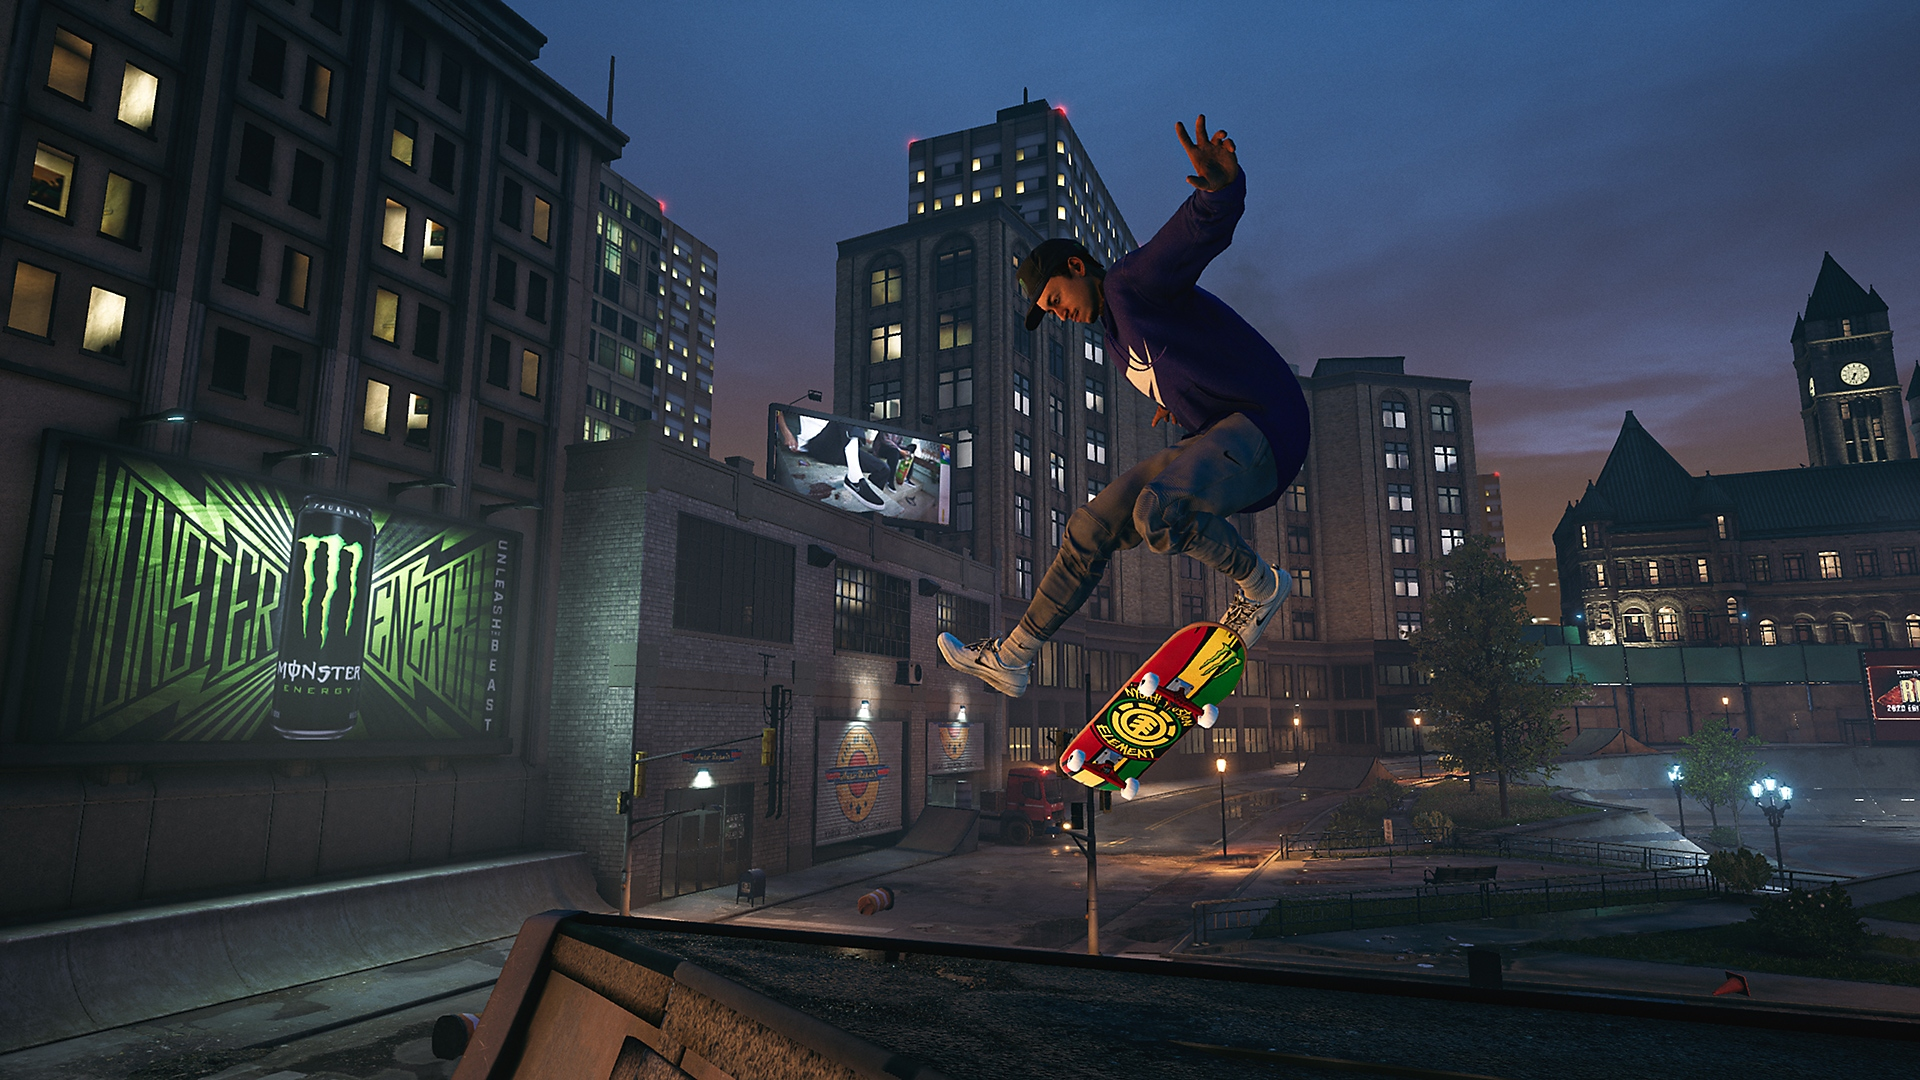 Tony Hawk's Pro Skater 1 + 2 - Gallery Screenshot 14